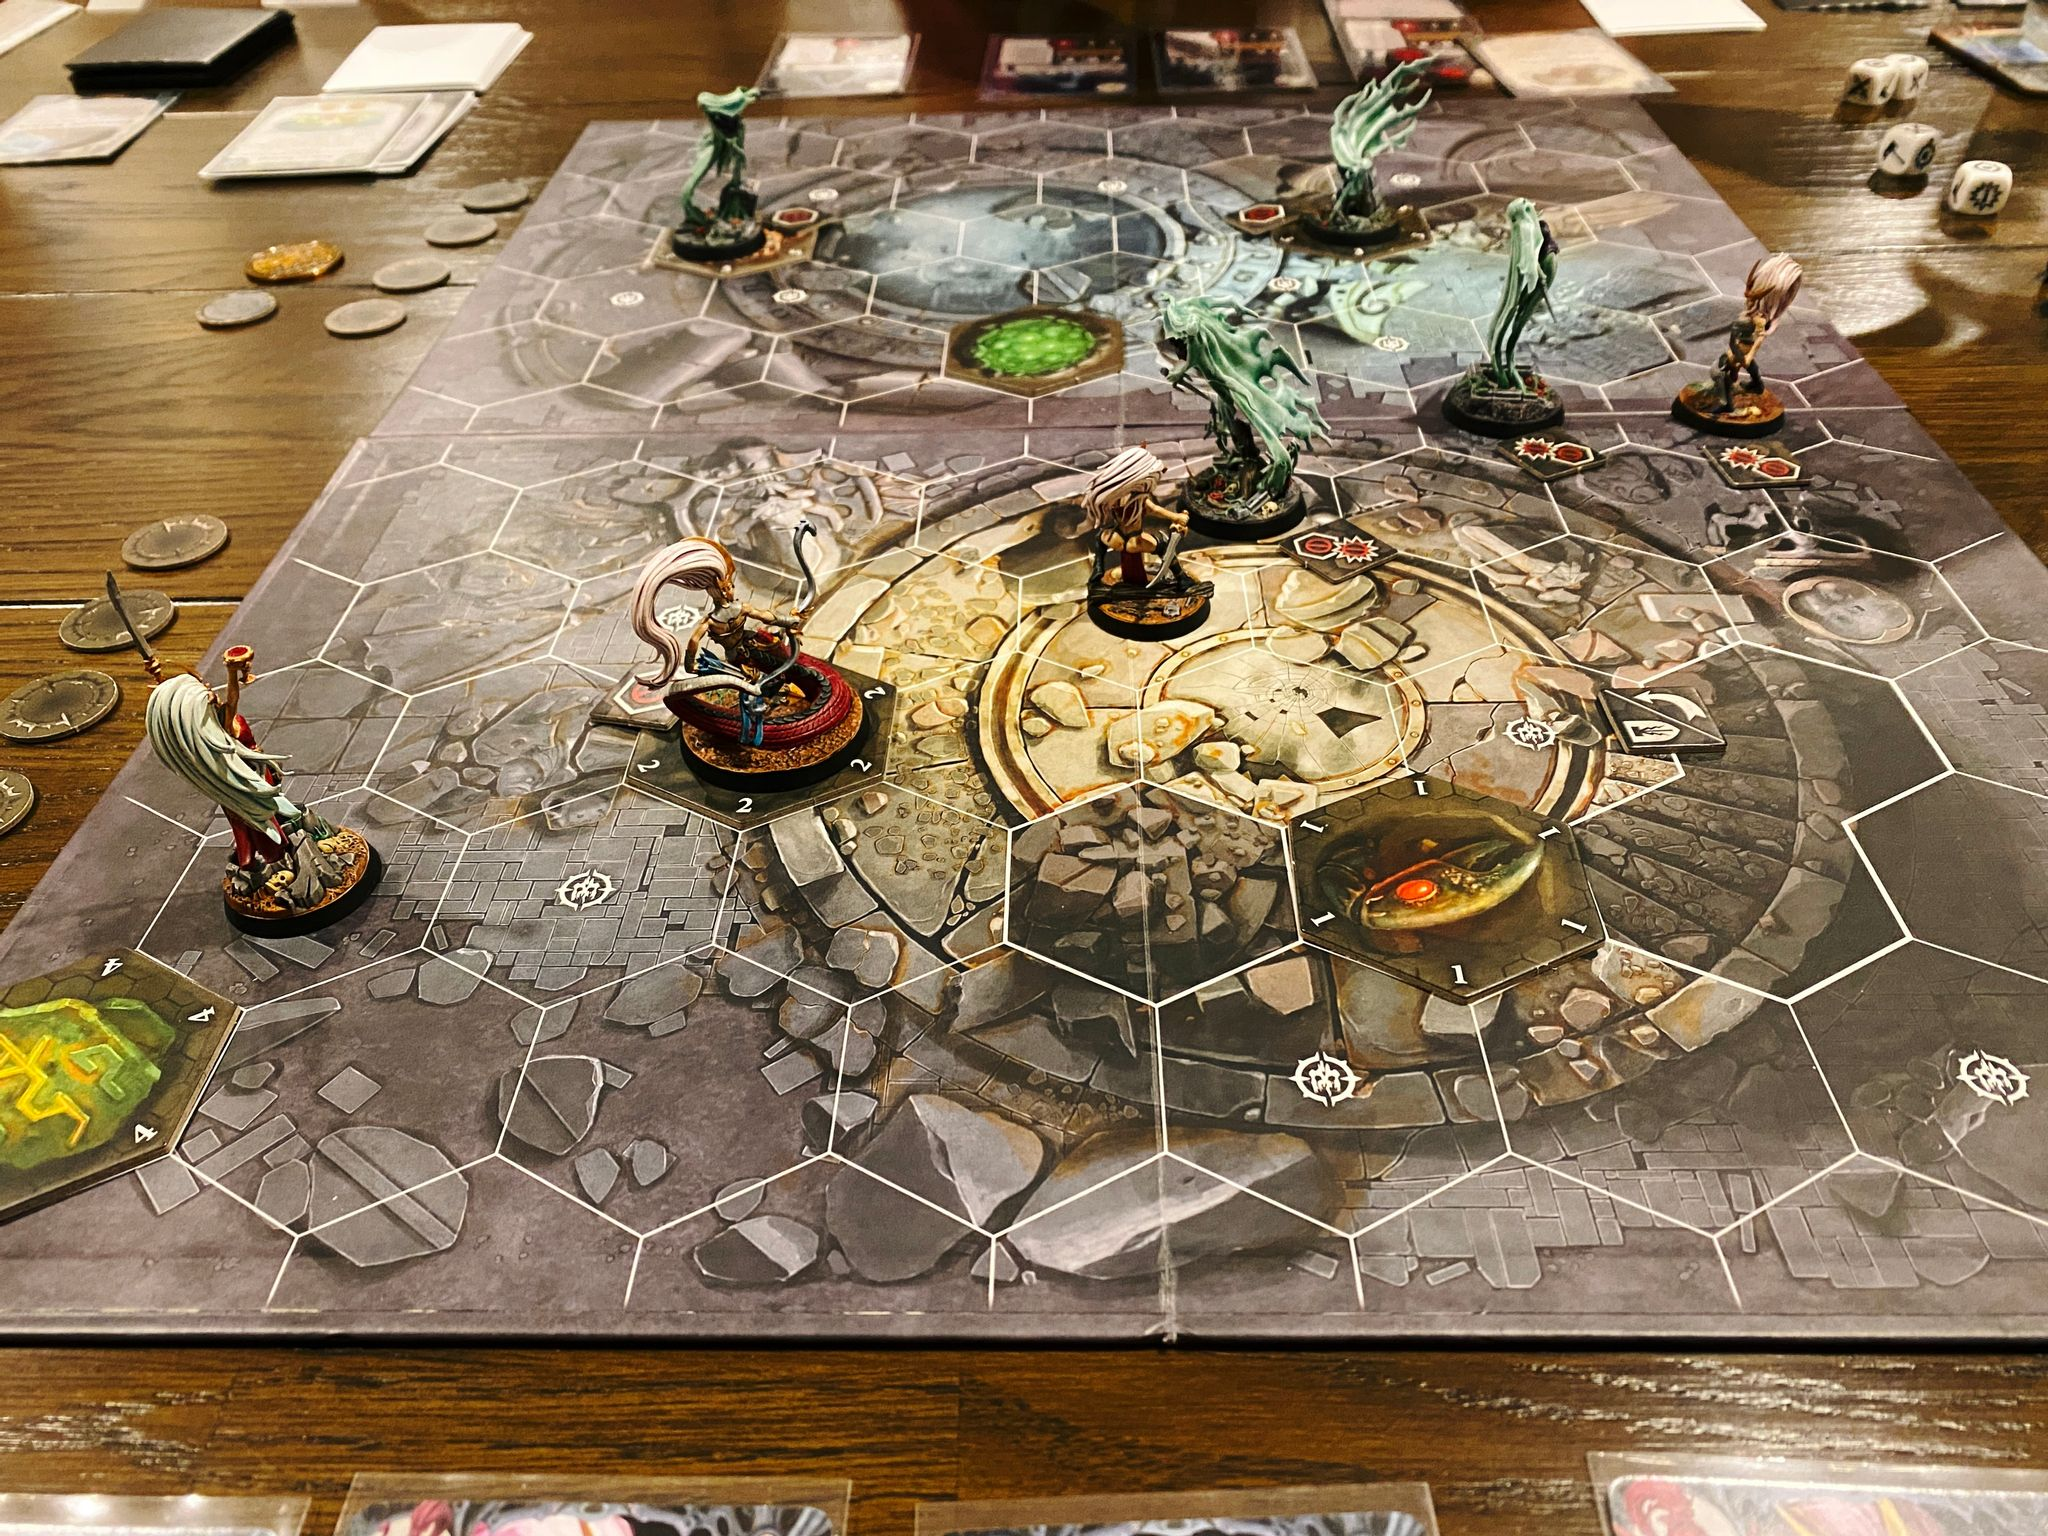 A photo of a game of Warhammer Underworlds. The two warbands being played are Lady Harrow's Mournflight, which are ghostly flowing spirit-looking miniatures, and Morgwaeth's Blade-coven, which are lithe aelves wearing not too much armour.